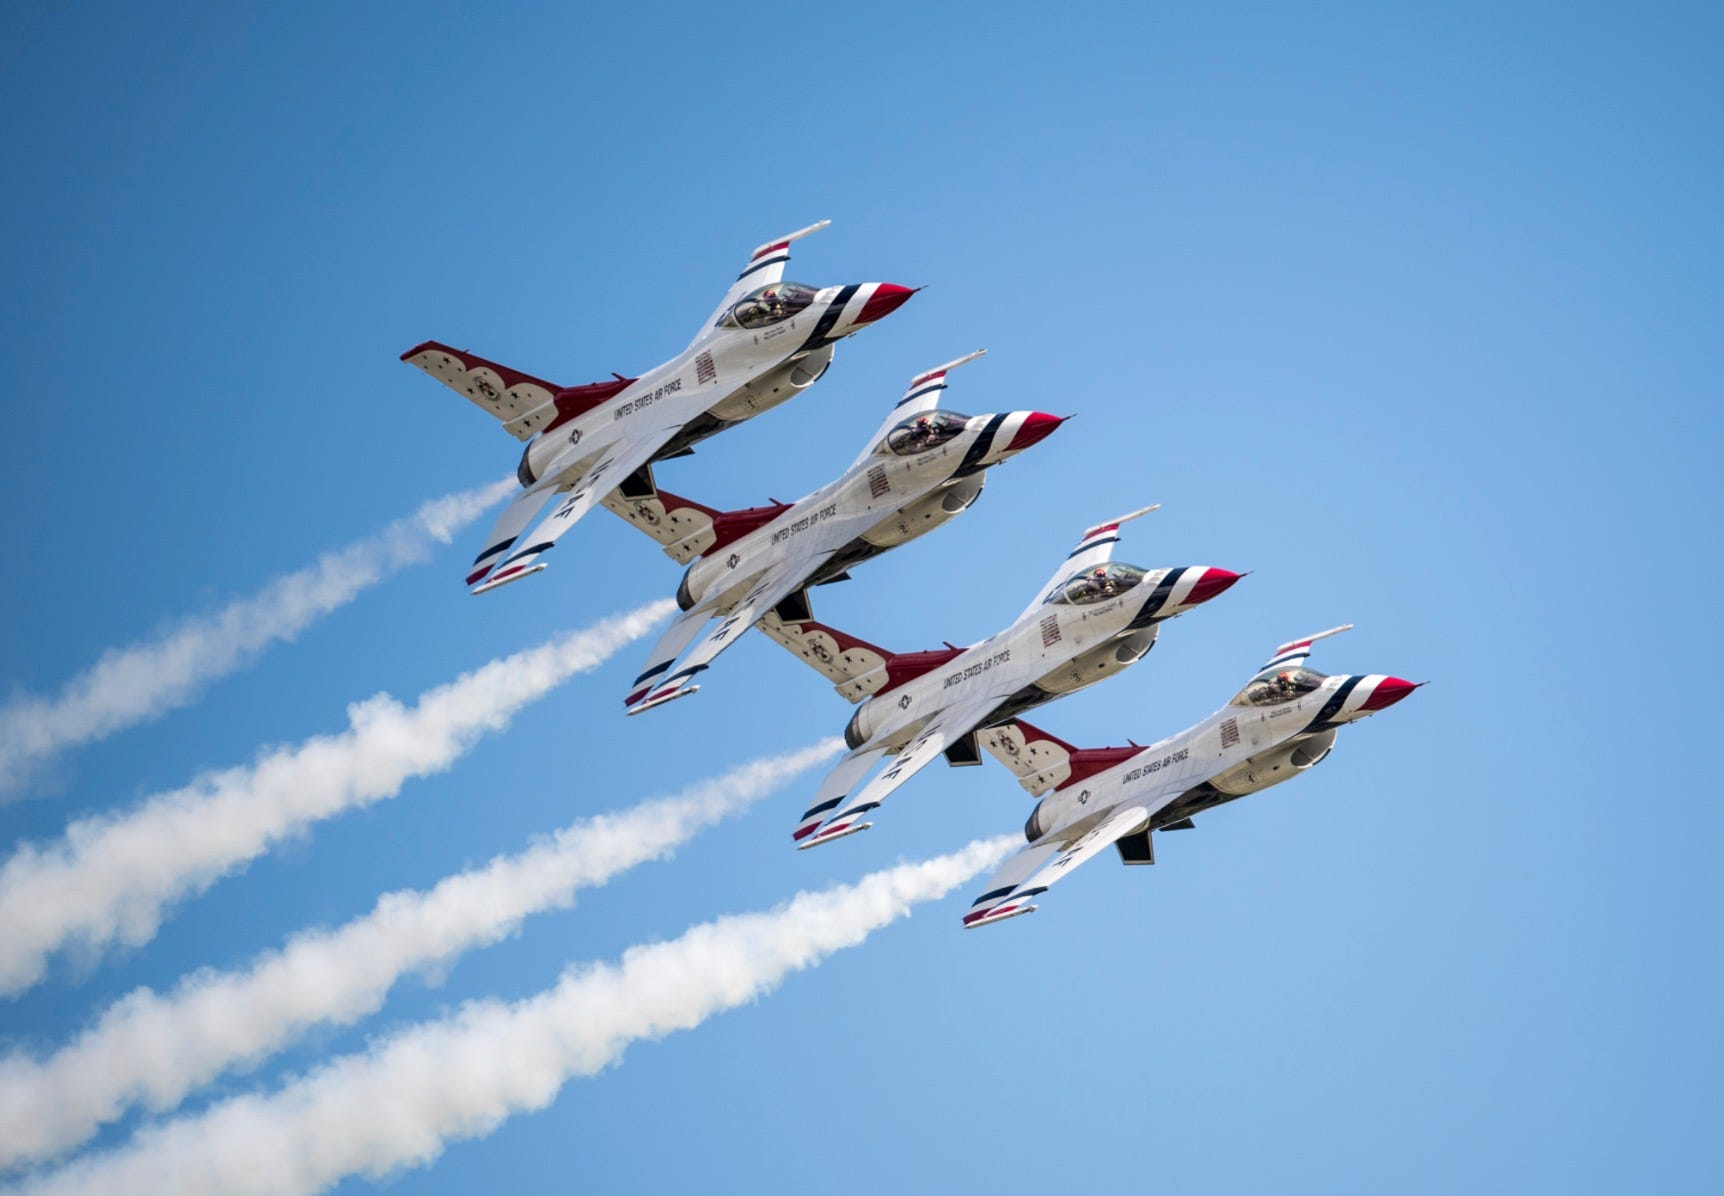 F-16 Thunderbird plane crashes at Wright-Patterson Air Force Base ahead of air show